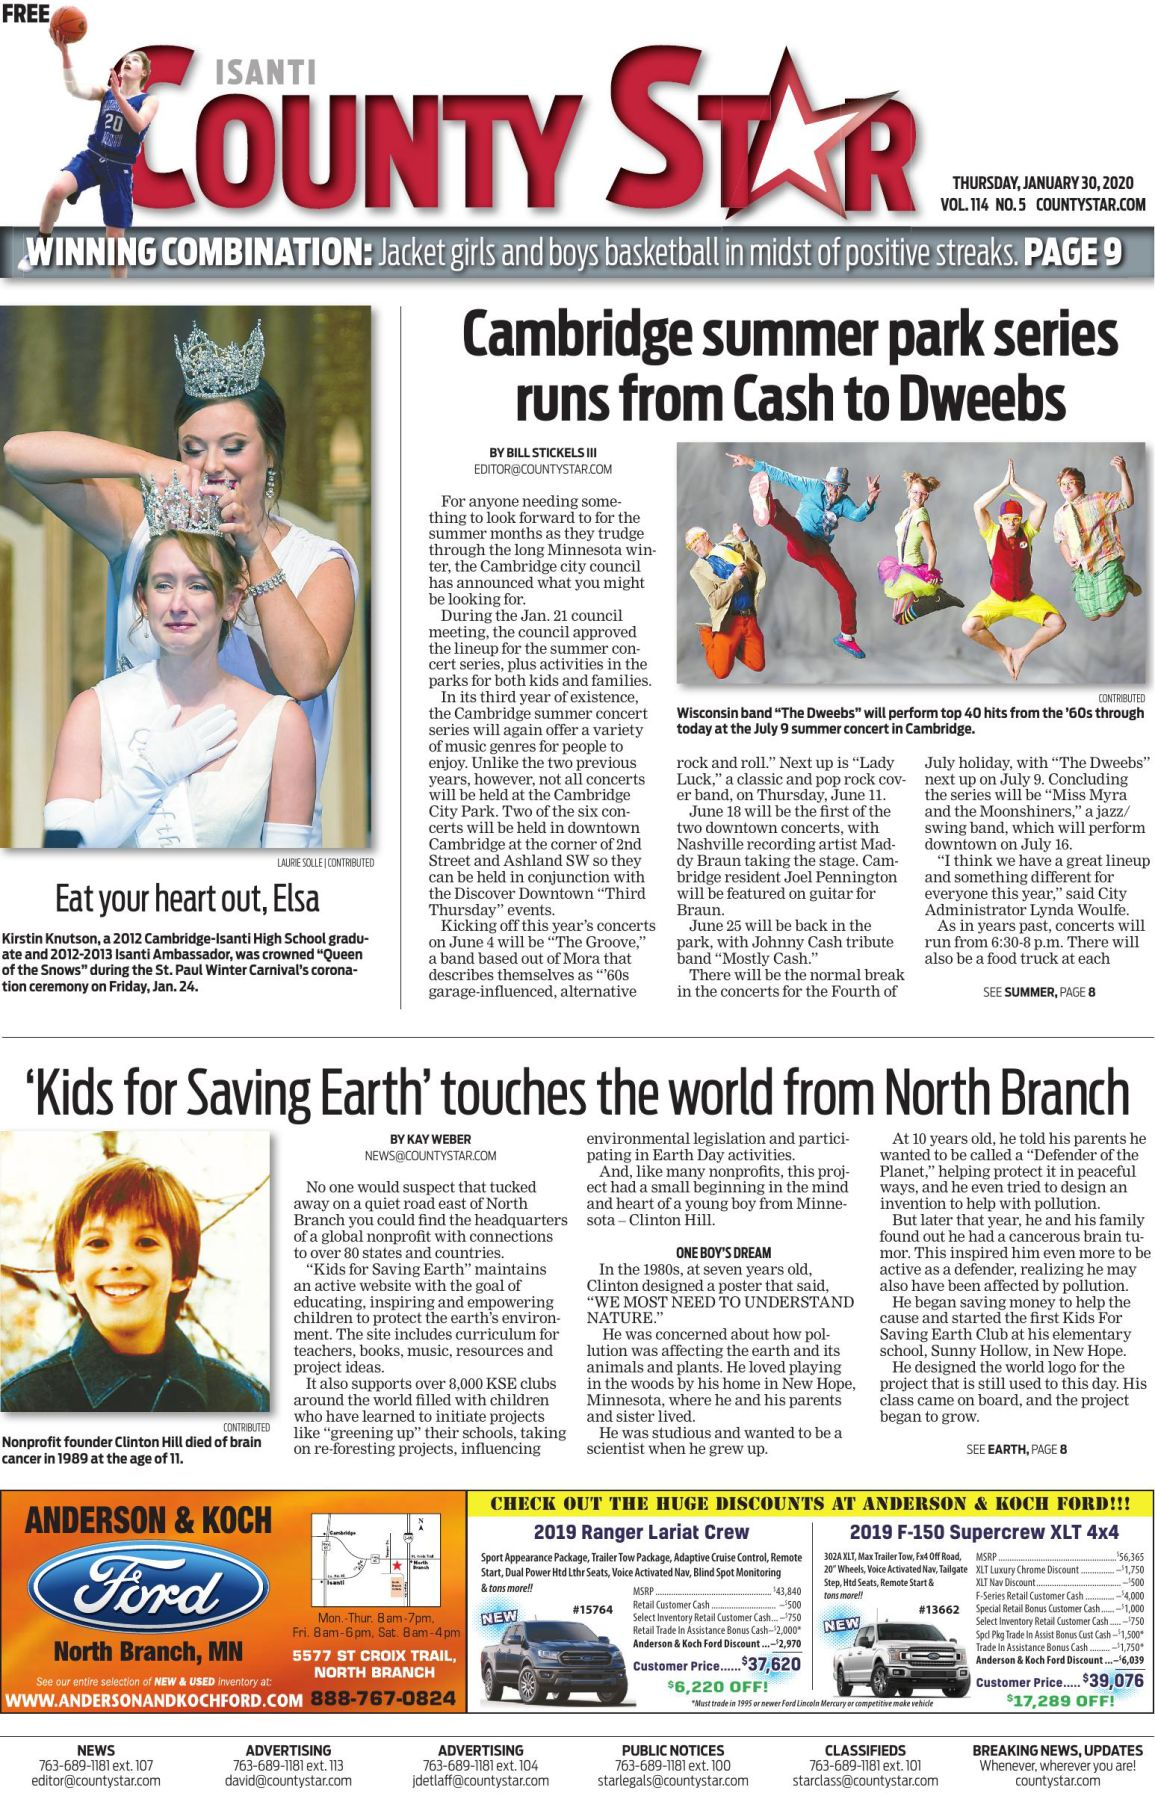 Isanti County Star January 30, 2020 e-edition